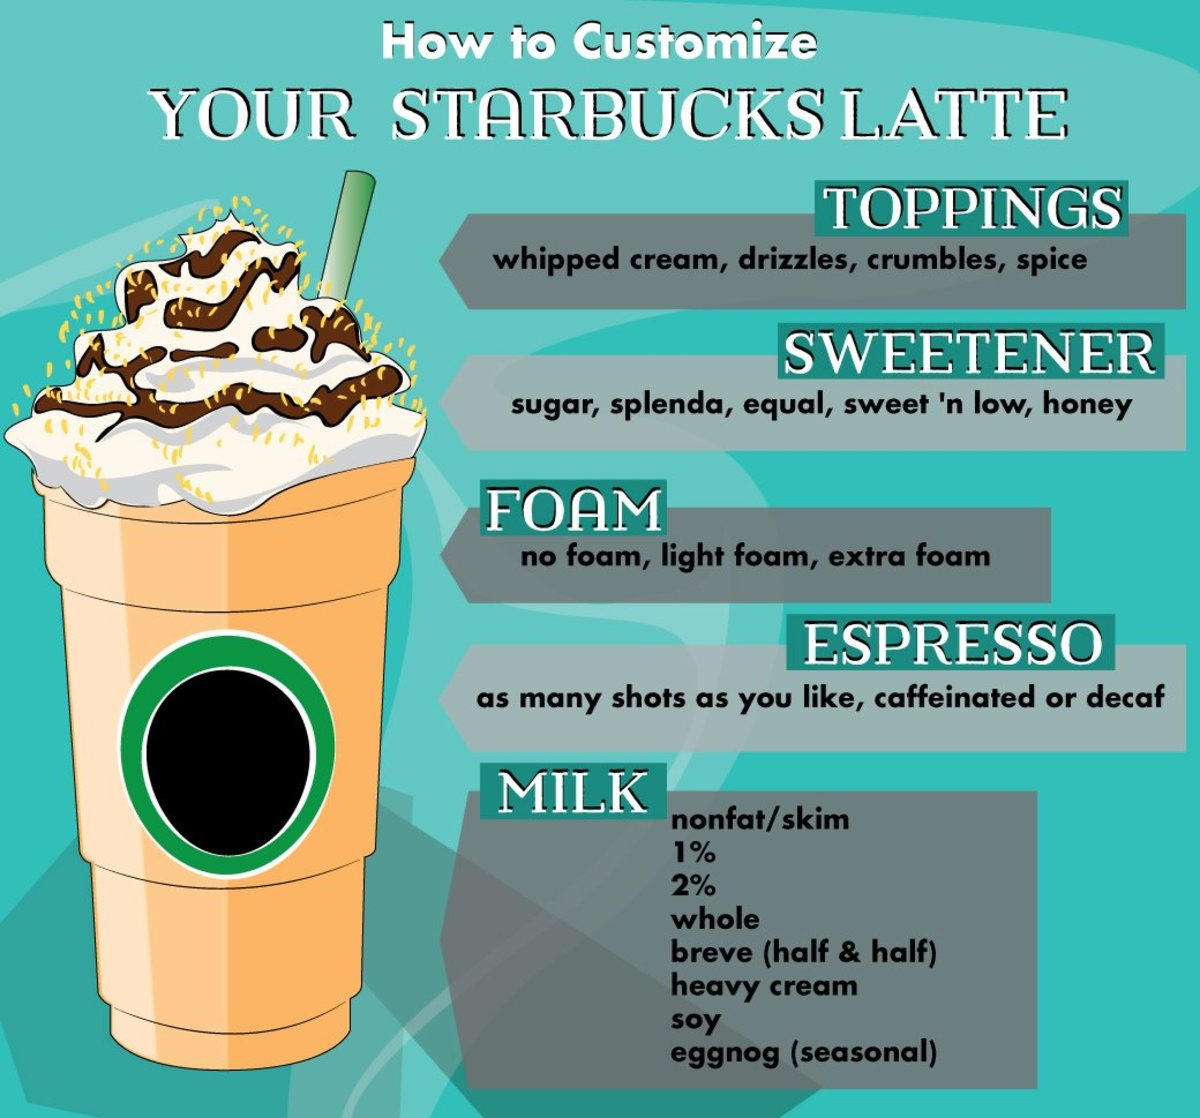 Starbucks Drink Guide: Lattes